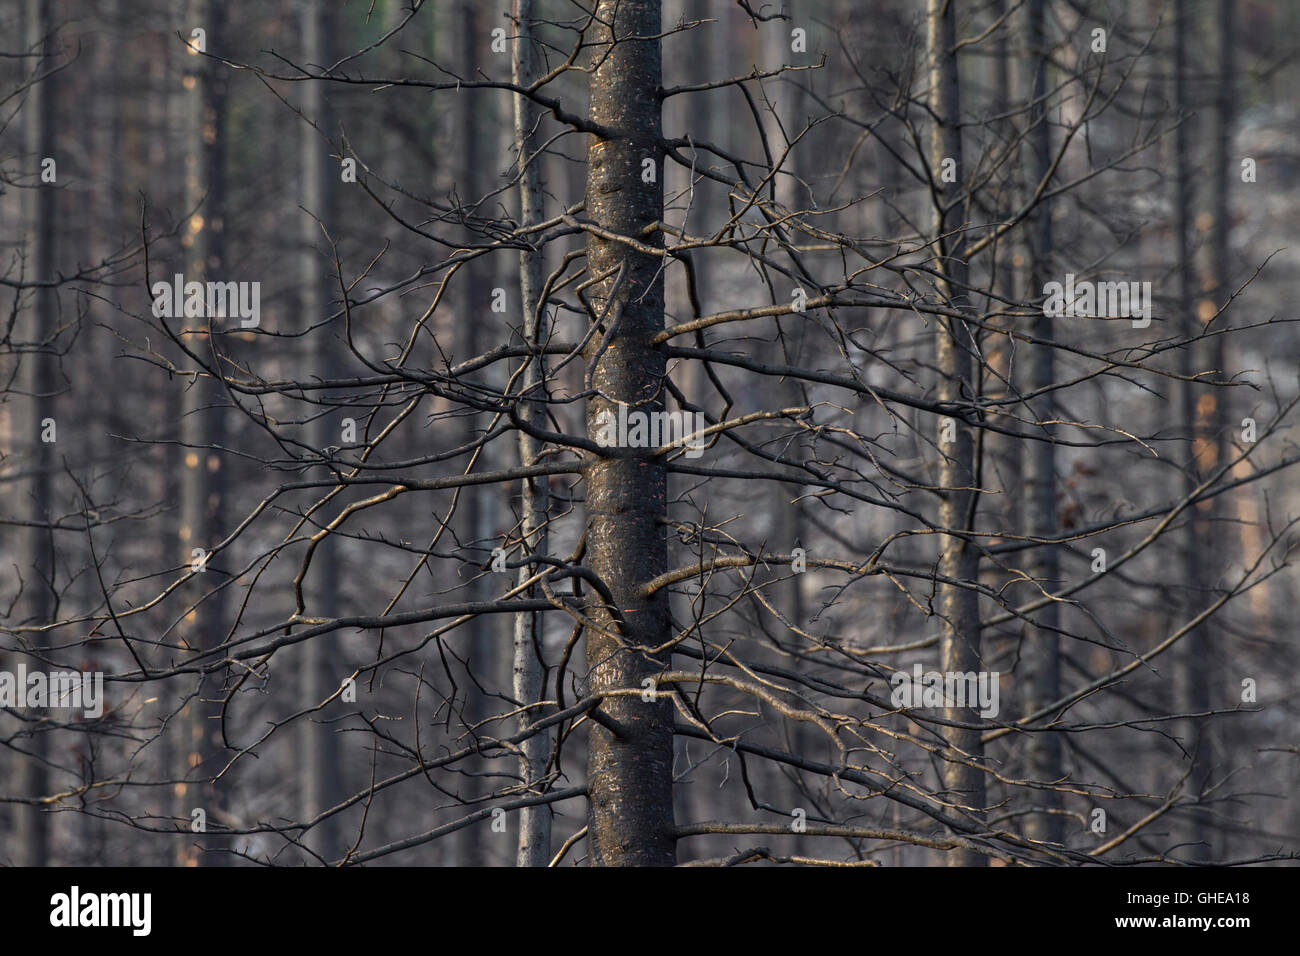 Burned tree trunks after wildfire in coniferous forest - Stock Image